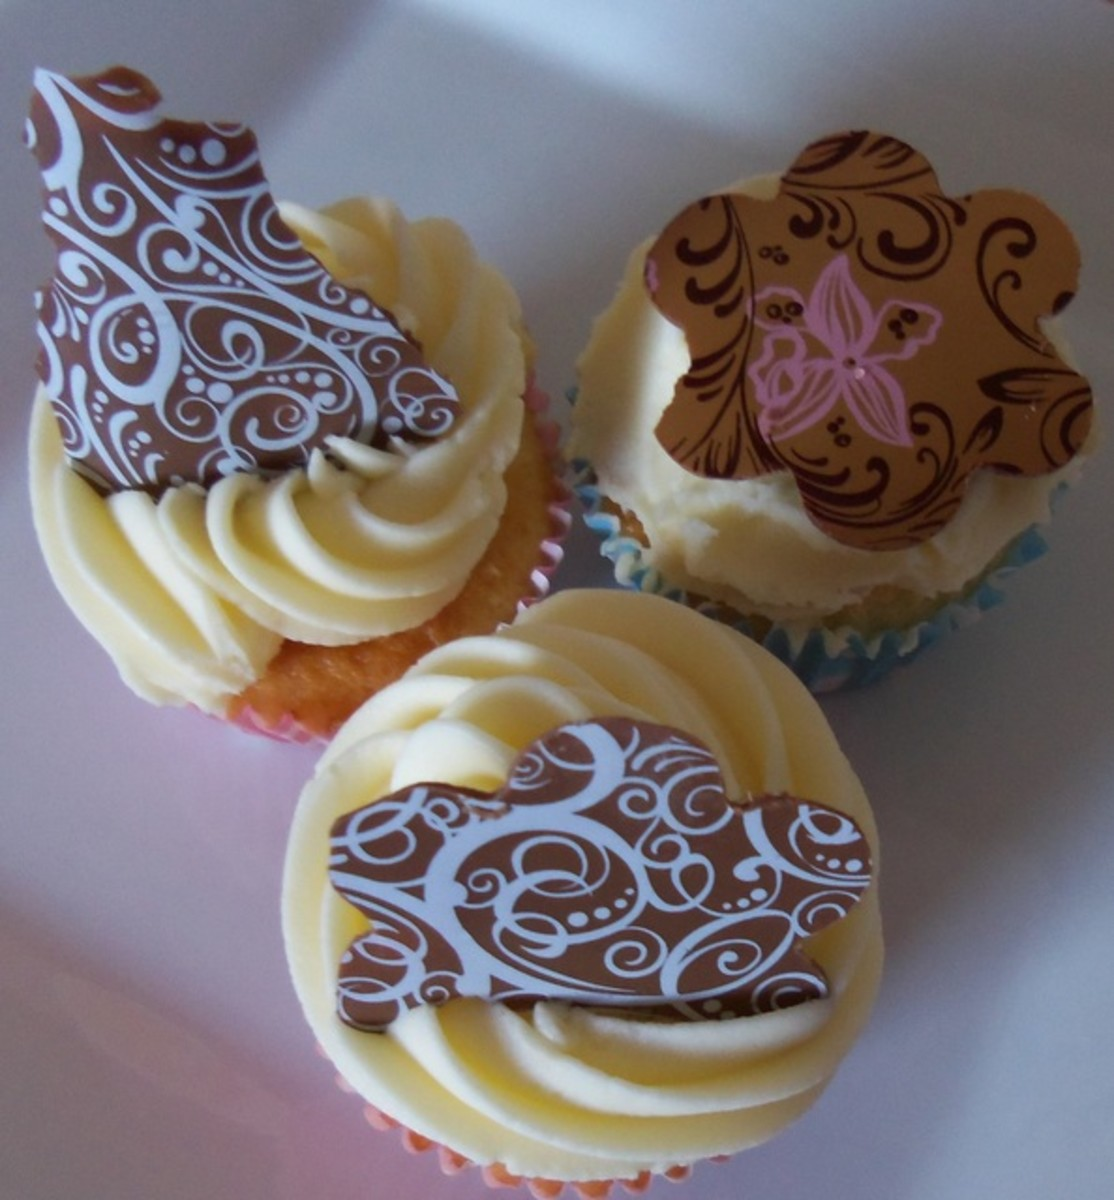 How To Use Chocolate Transfer Sheets to Decorate Cupcakes